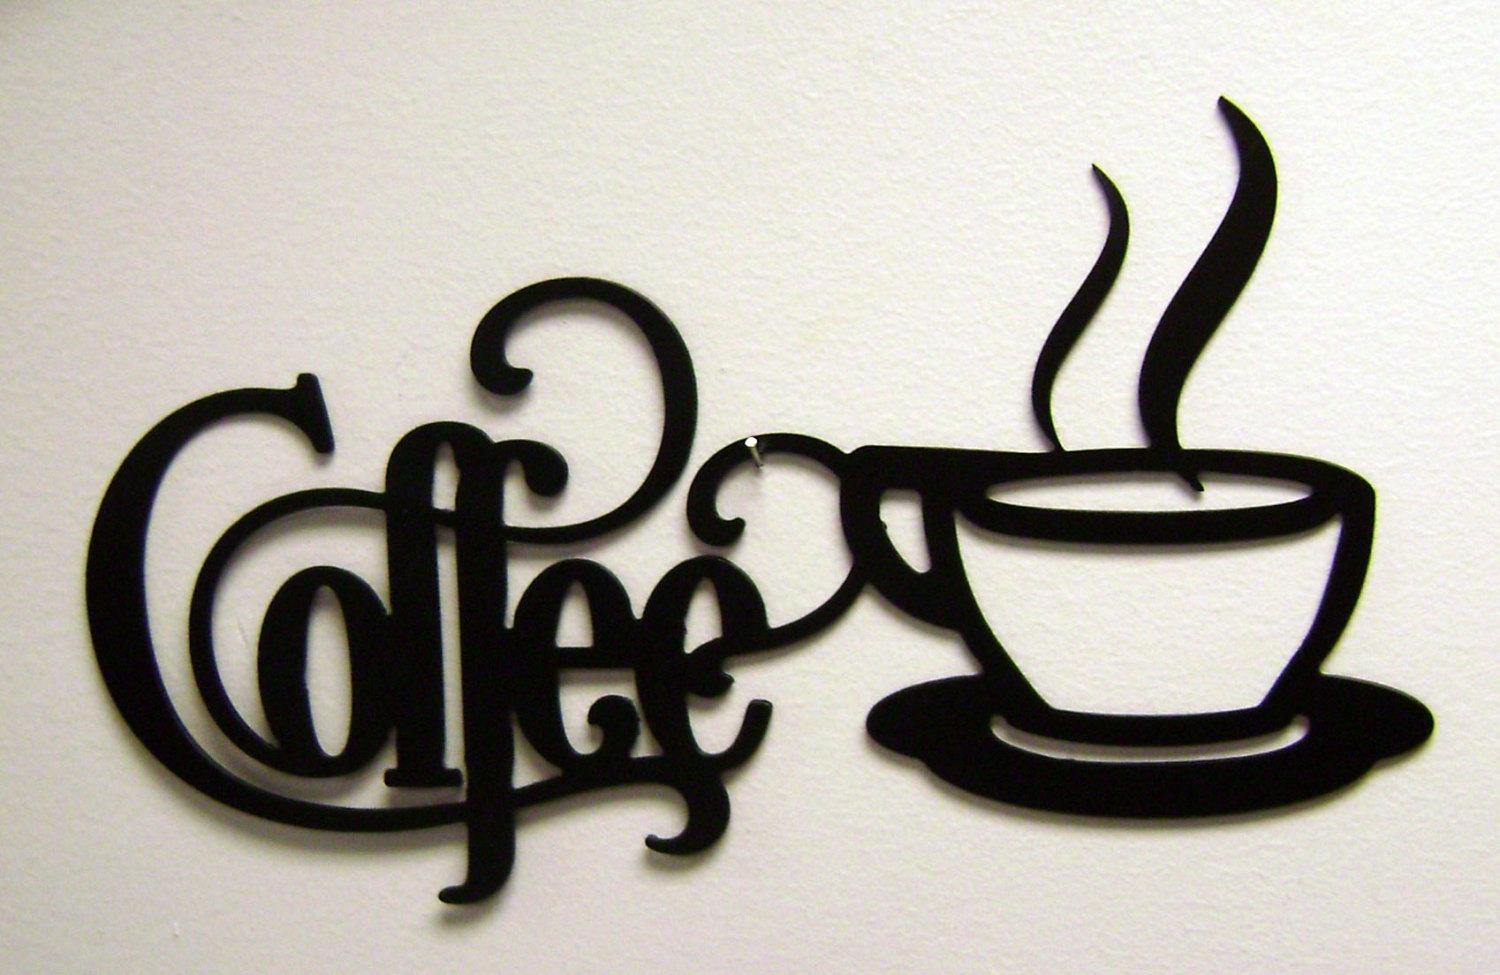 14 X 7 Bistro Coffee Sign With Mug Metal Wall In Coffee Bistro Wall Art (Image 1 of 20)